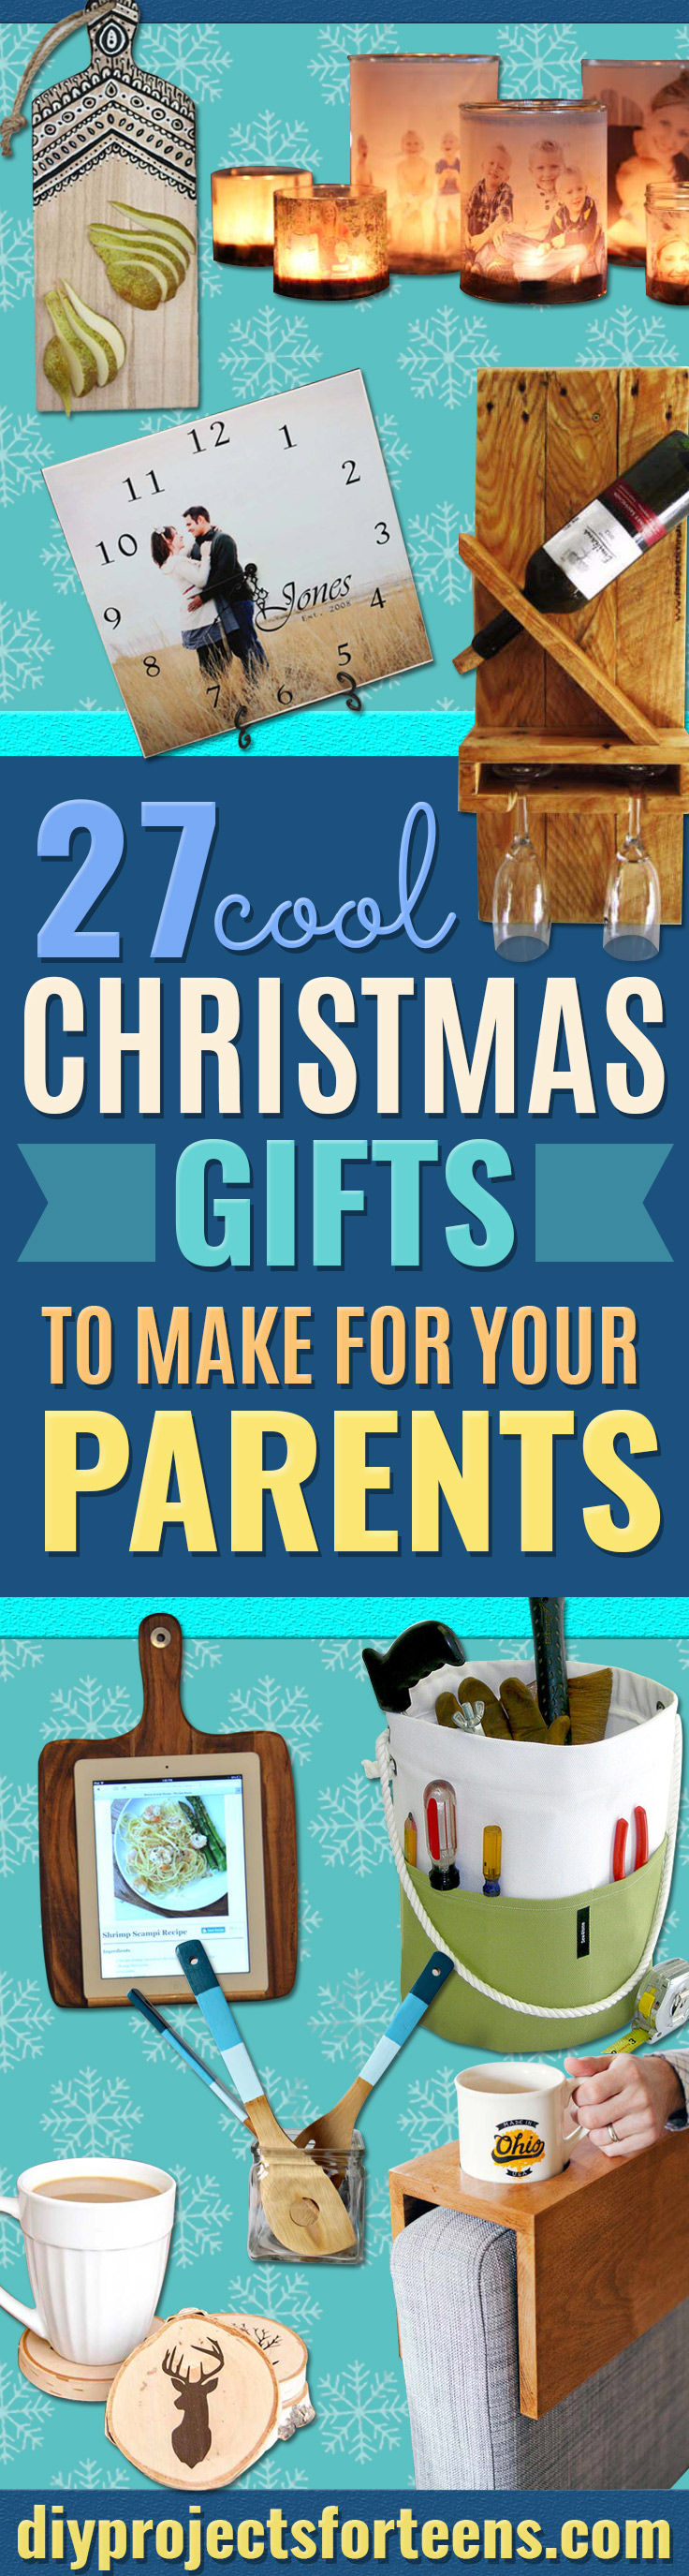 DIY Christmas Presents To Make For Parents - Cute, Easy and Cheap Crafts and Gift